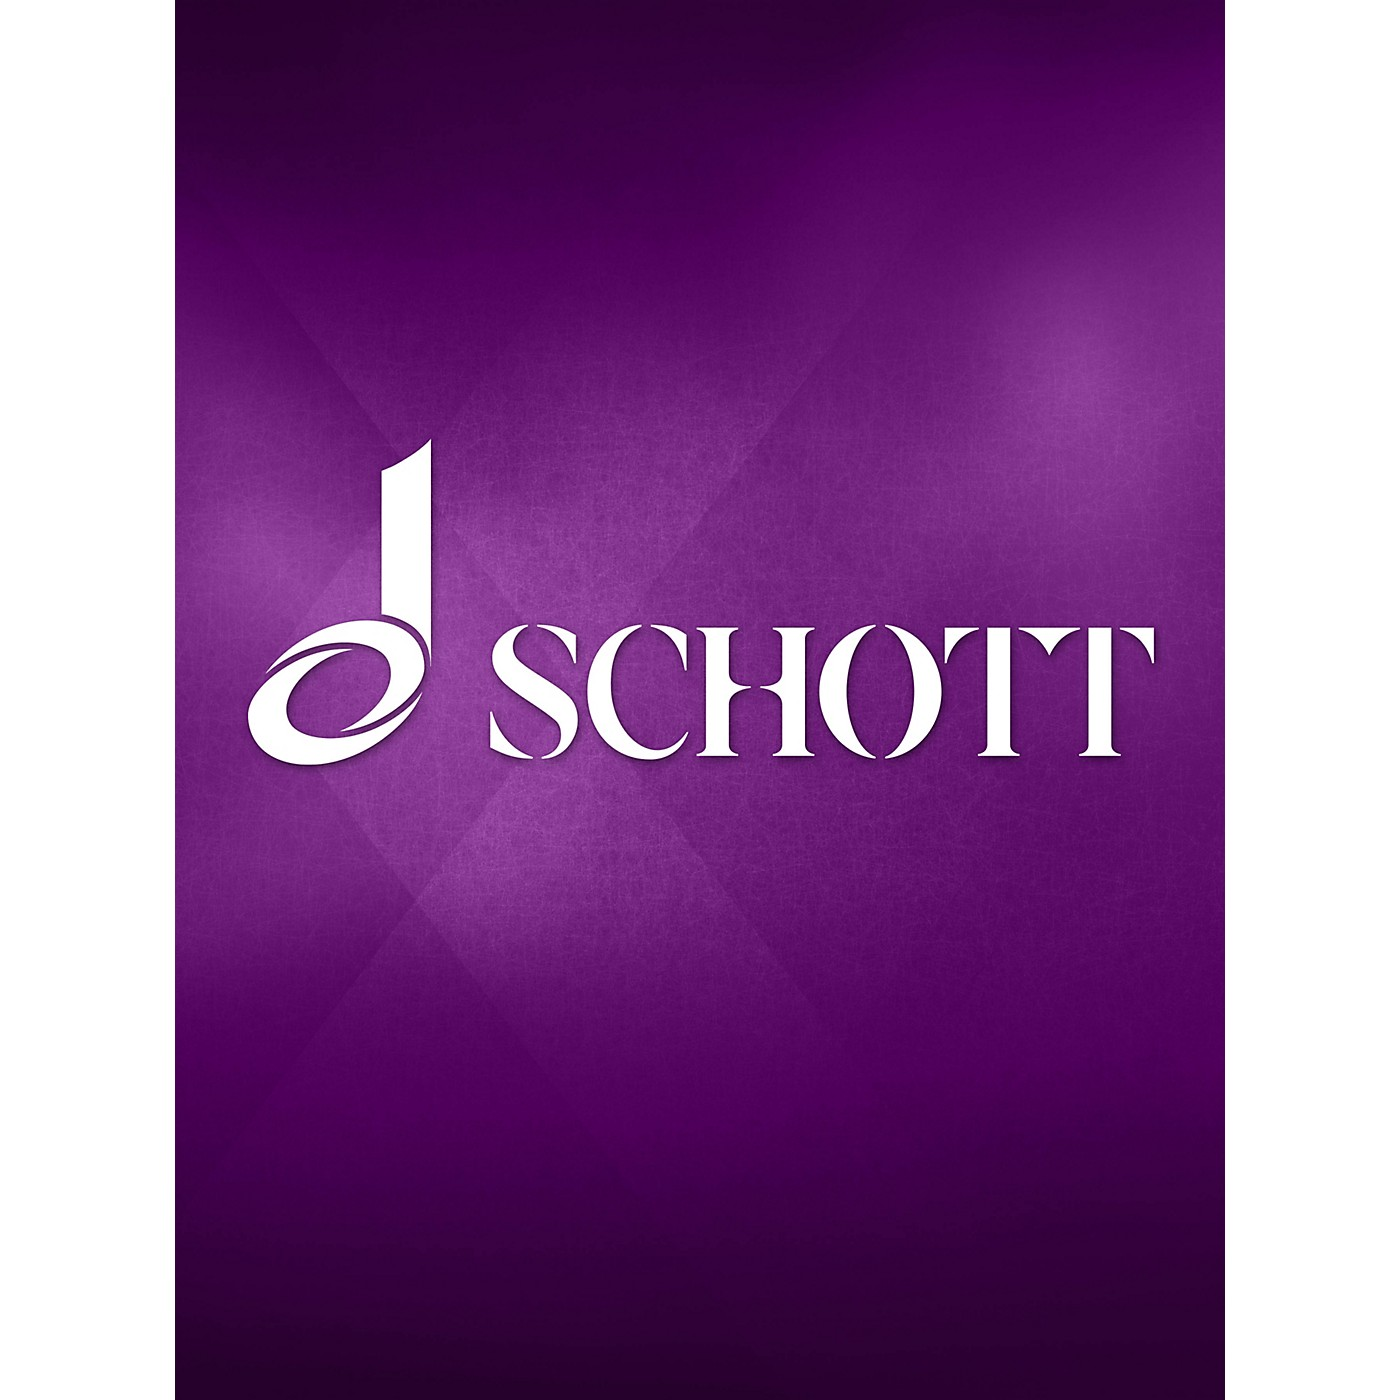 Schott Fiesta (Vocal/Piano Score) Schott Series Composed by Paul G. Vogt thumbnail